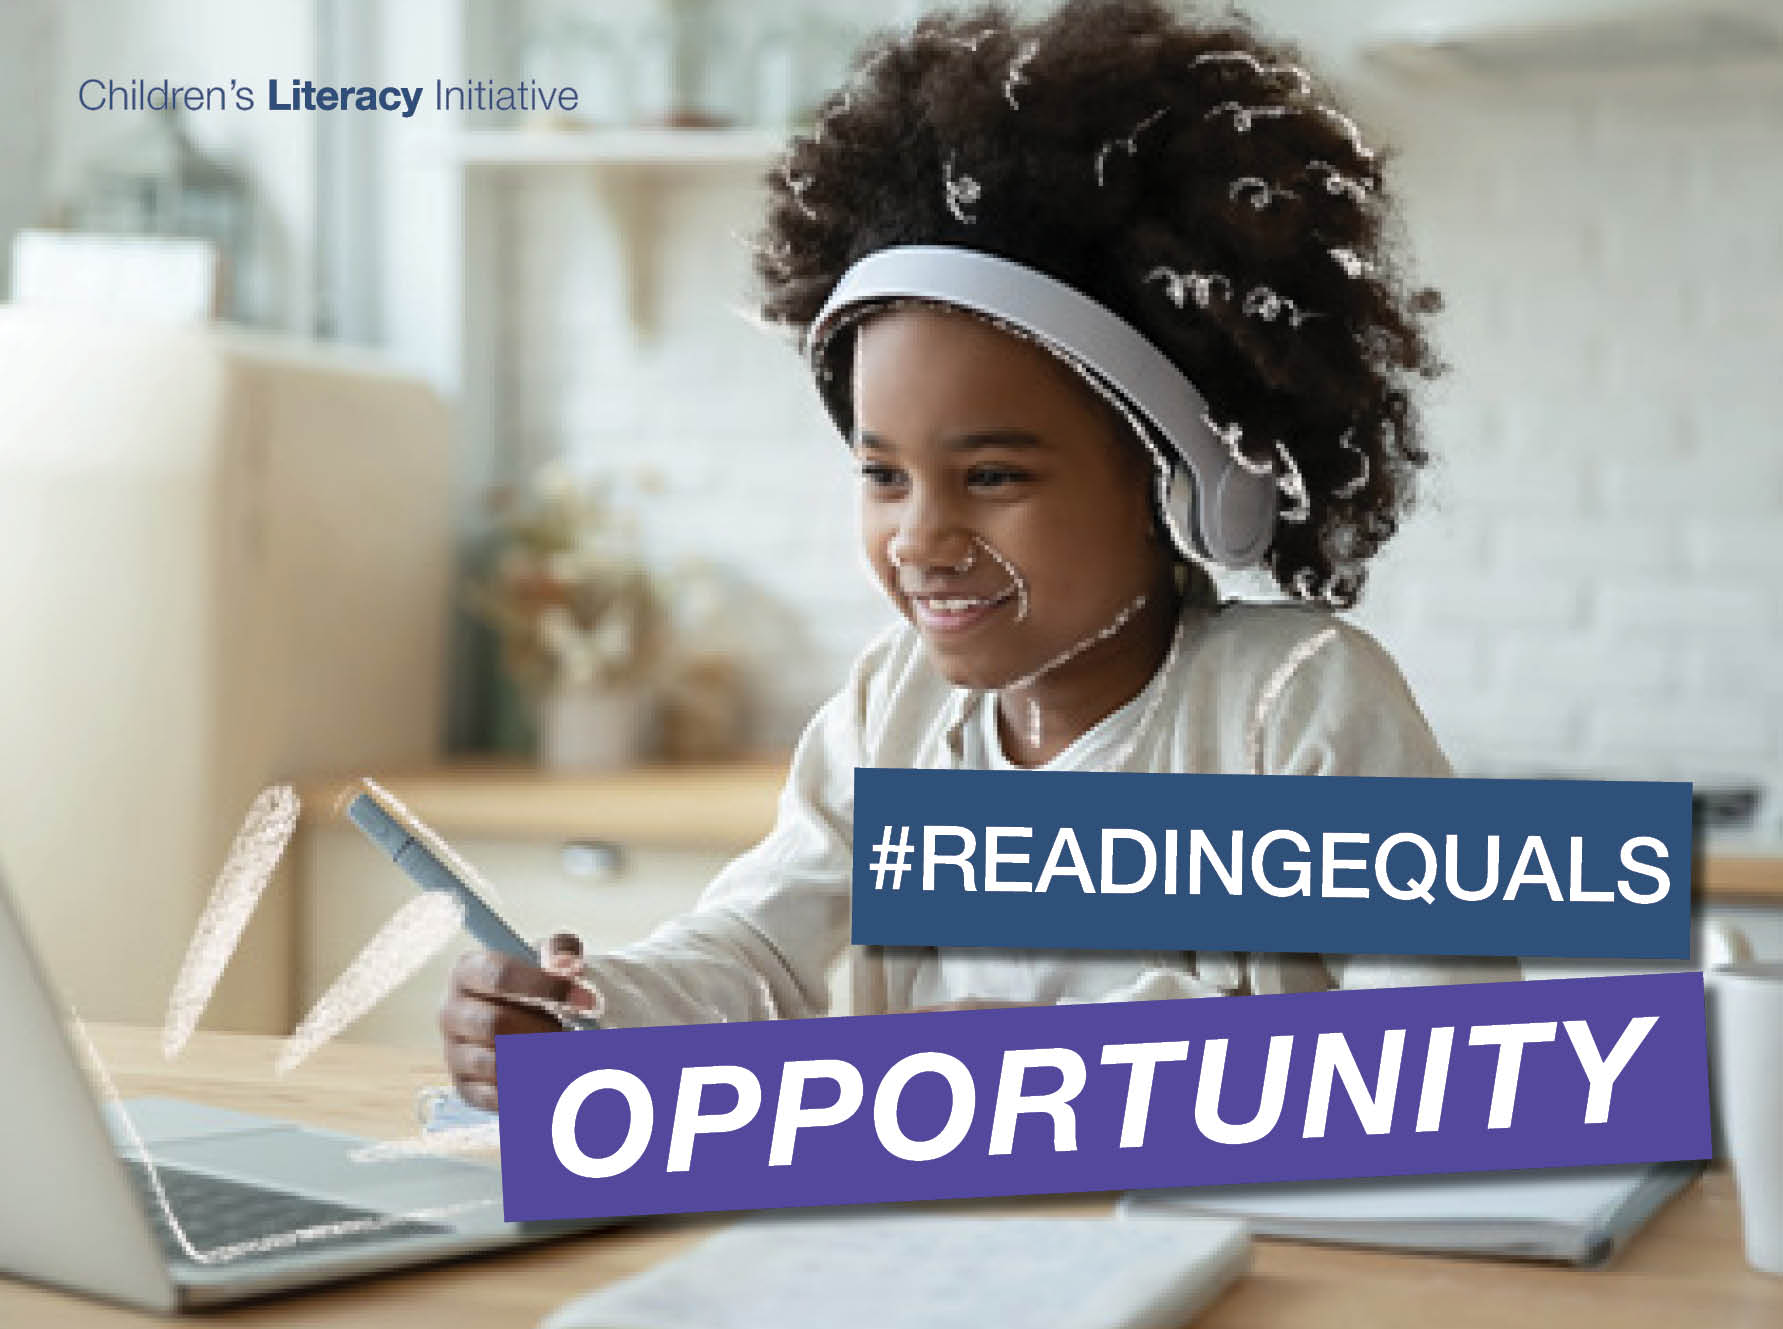 #ReadingEquals #Opportunity